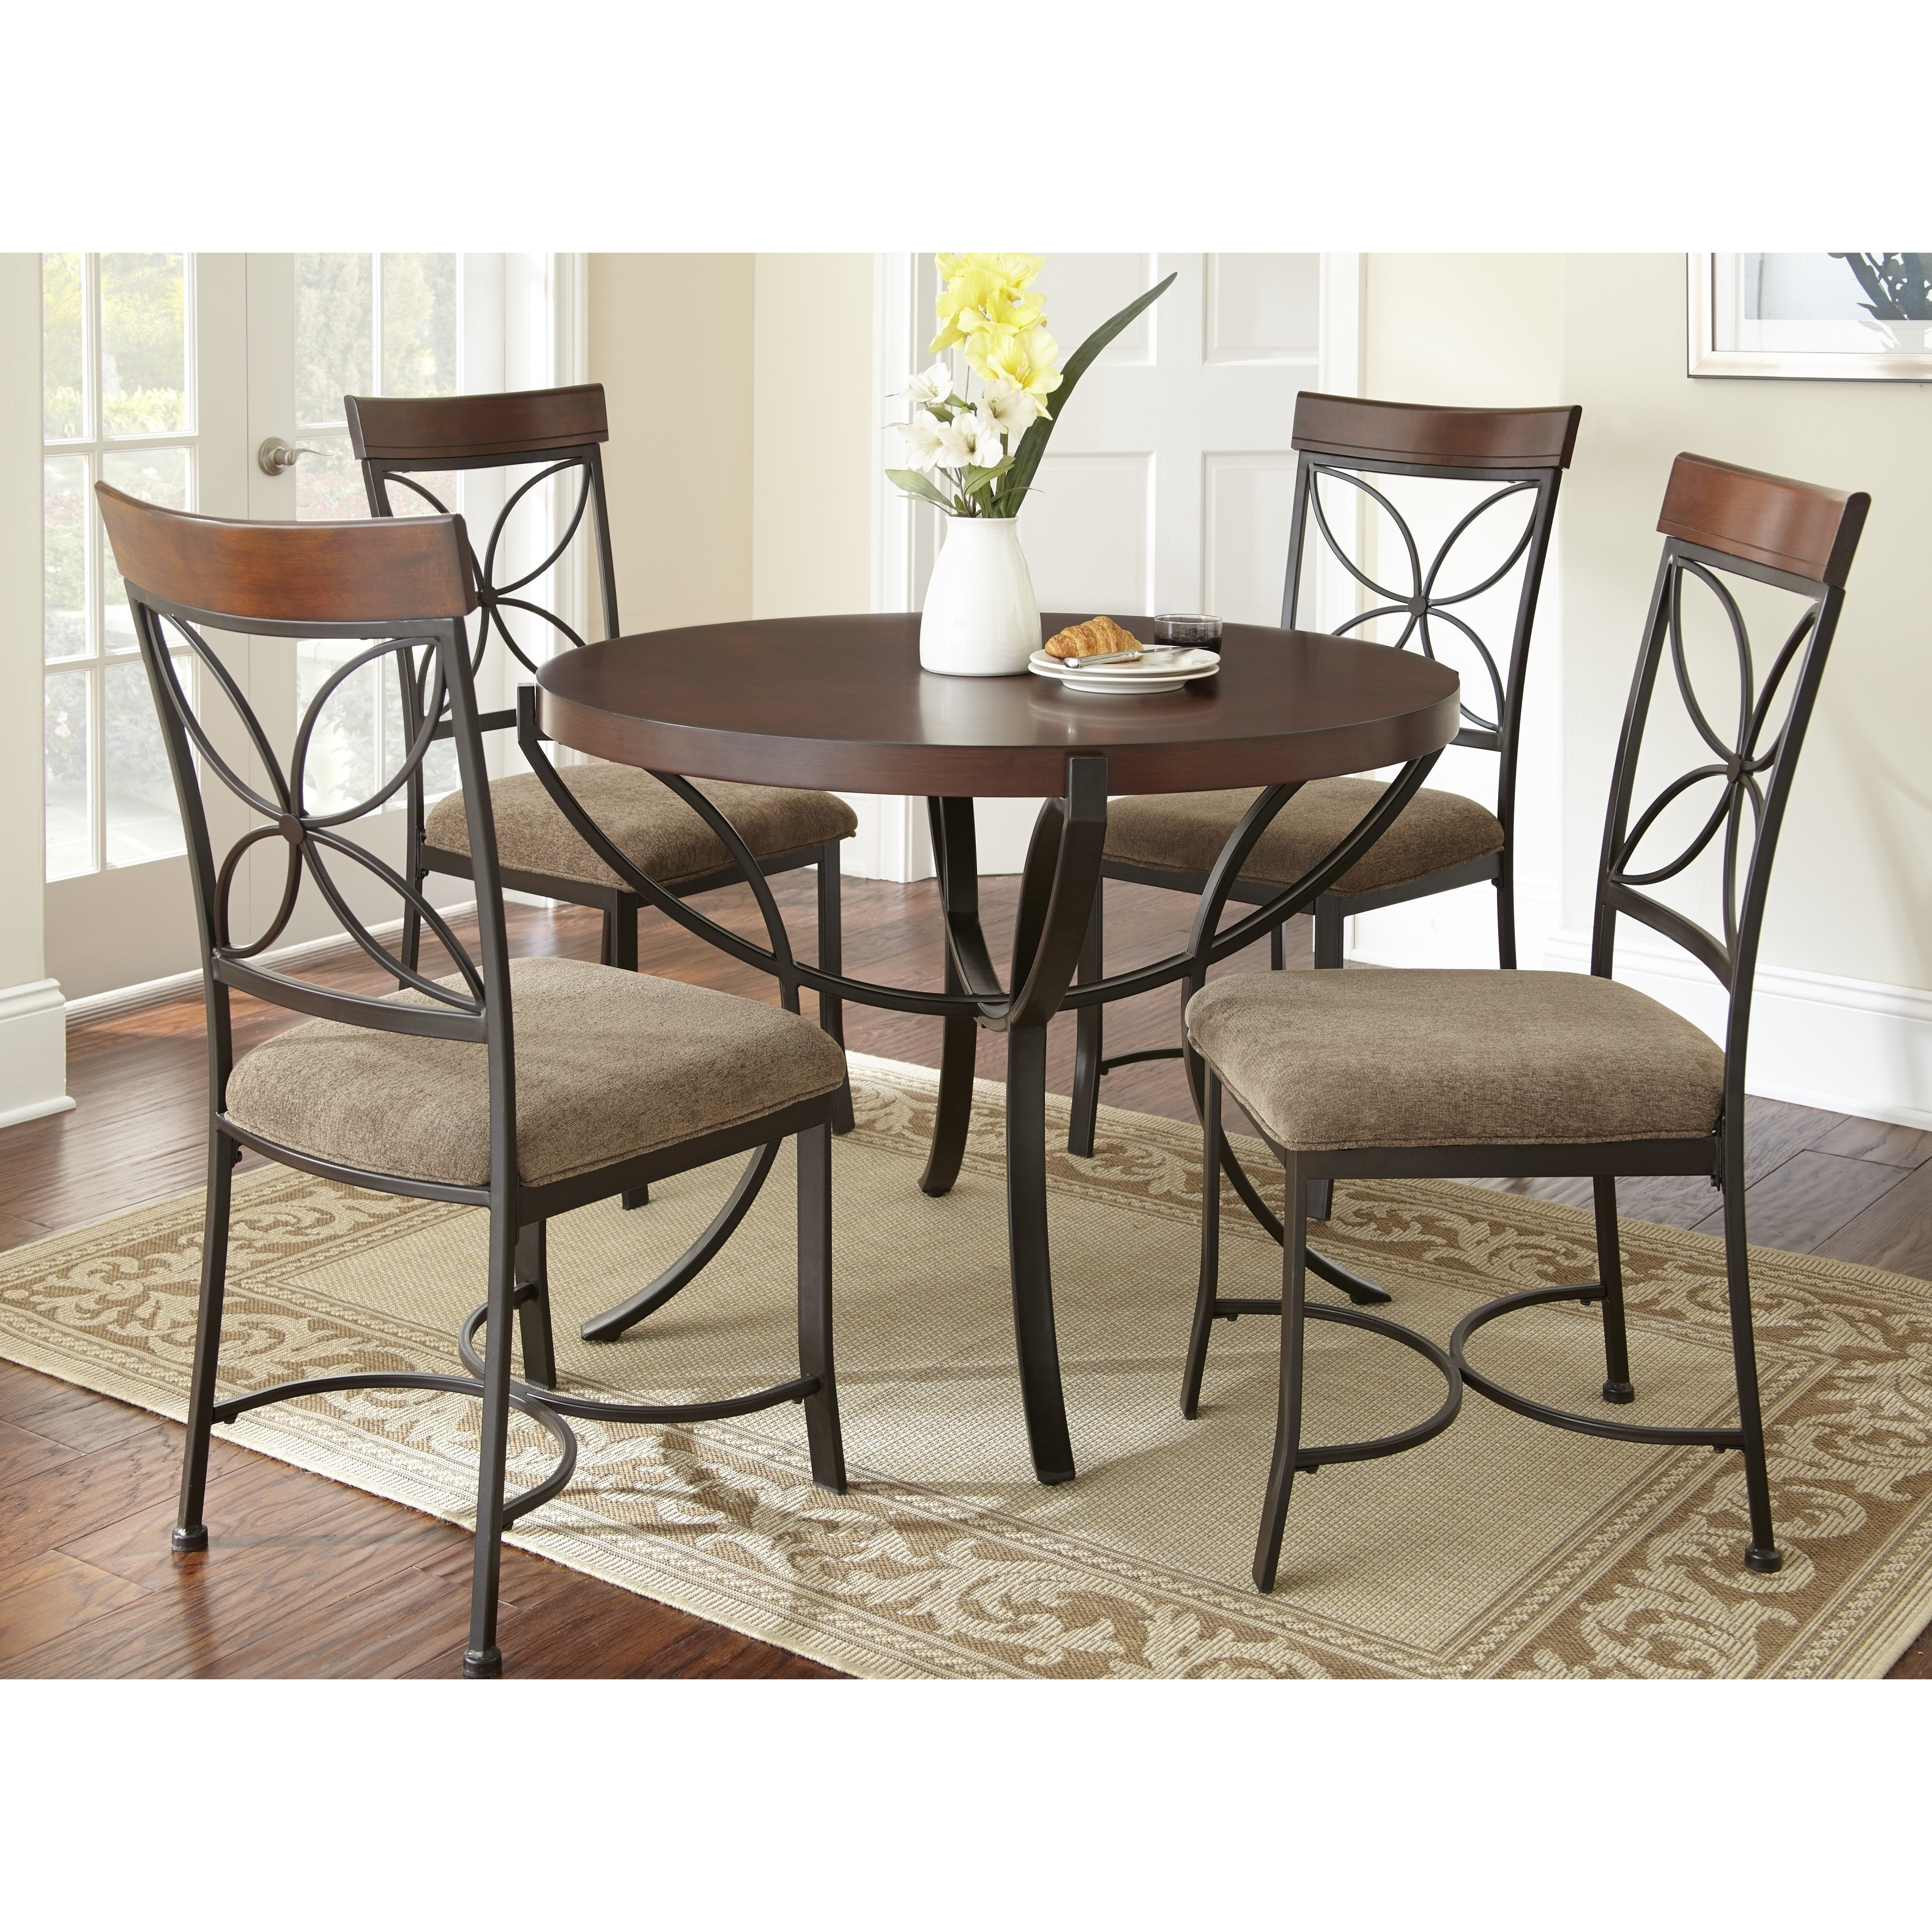 Overstock Dining Set: Santiago Round 5-piece Dining Set